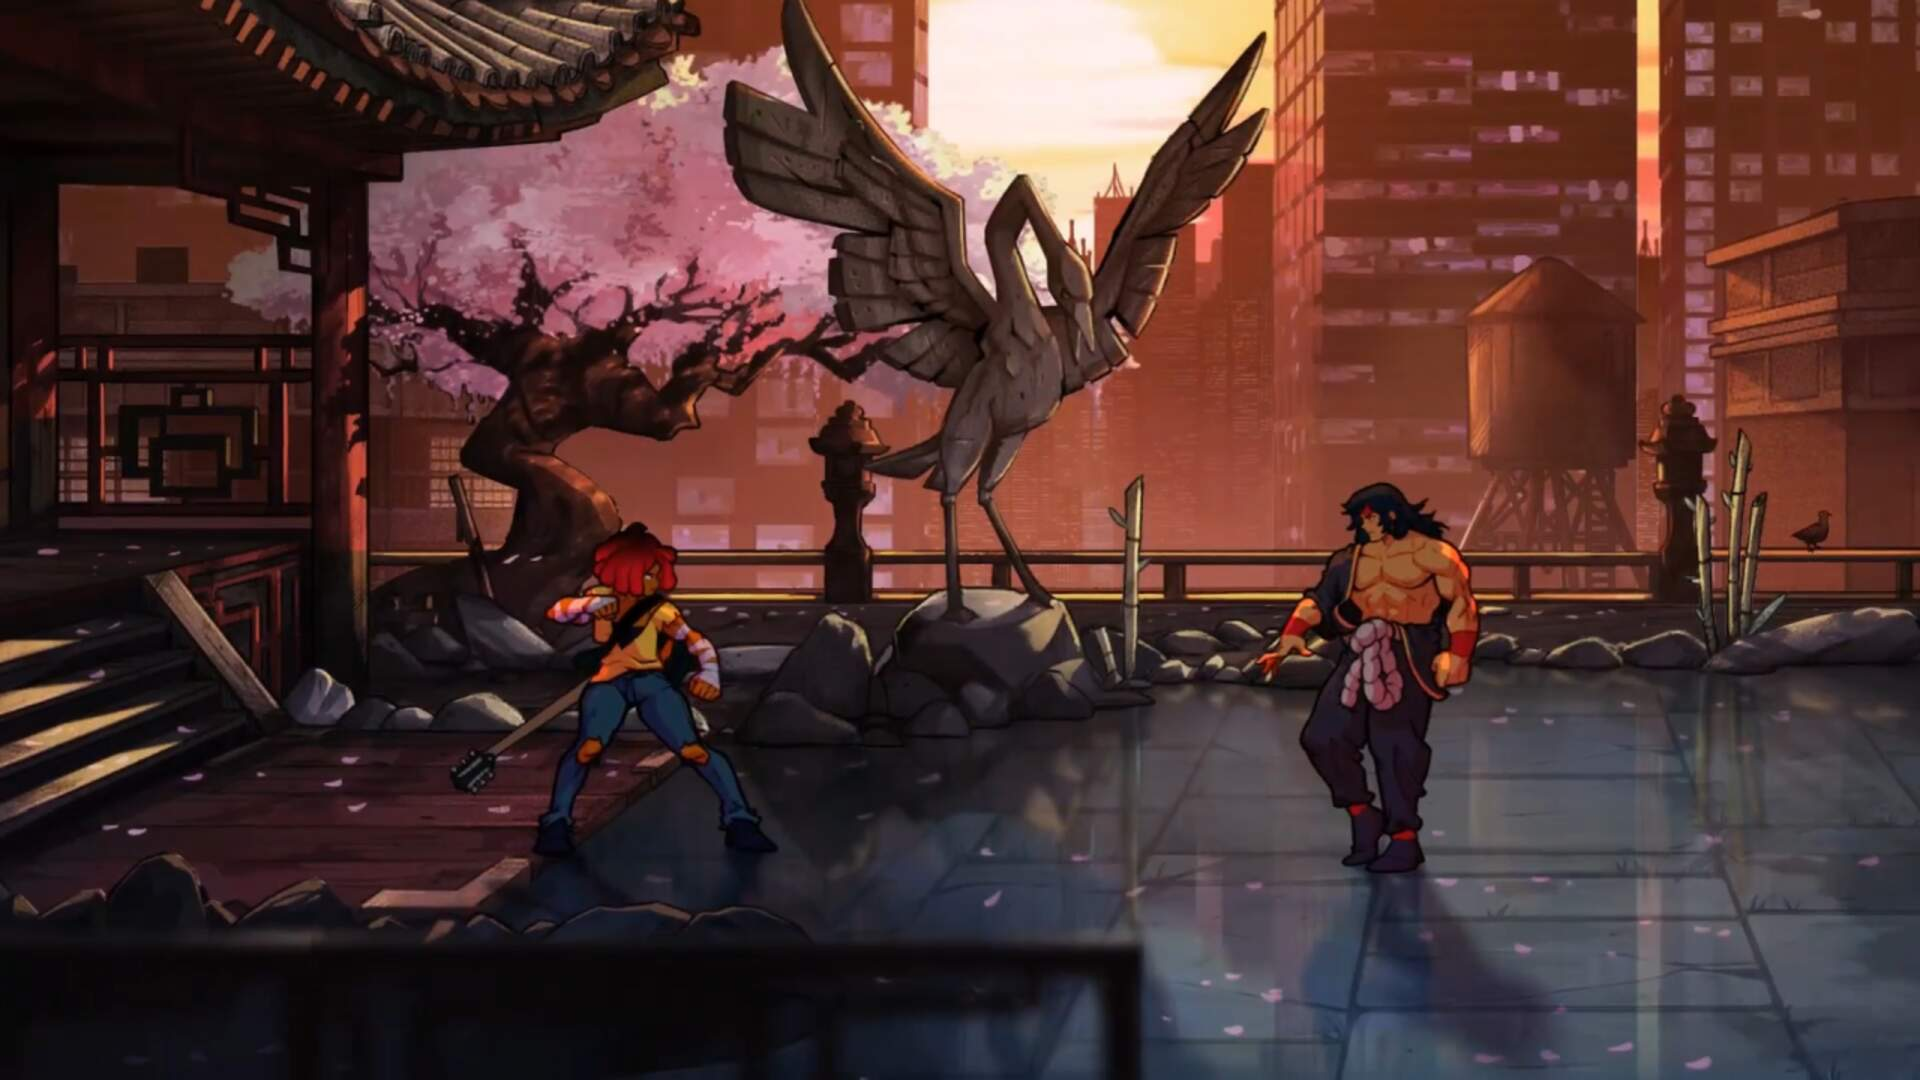 Streets of Rage 4 Arrives at the End of April, Sees the Return of Battle Mode